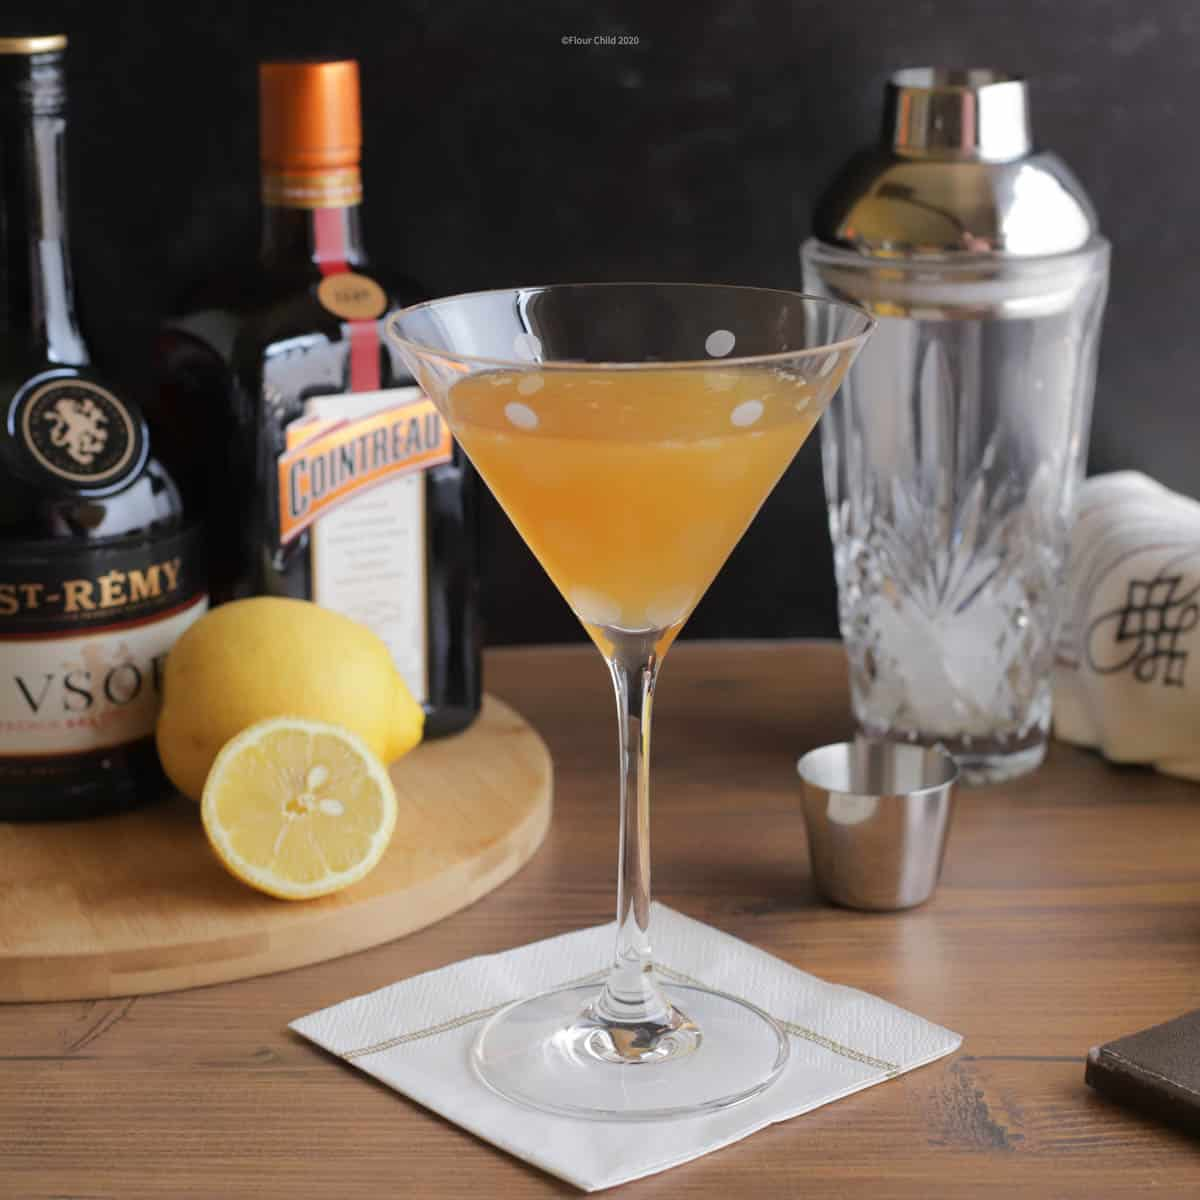 The sweet and sour Sidecar cocktail contains brandy, orange liqueur and fresh lemon juice for a refreshing drink.